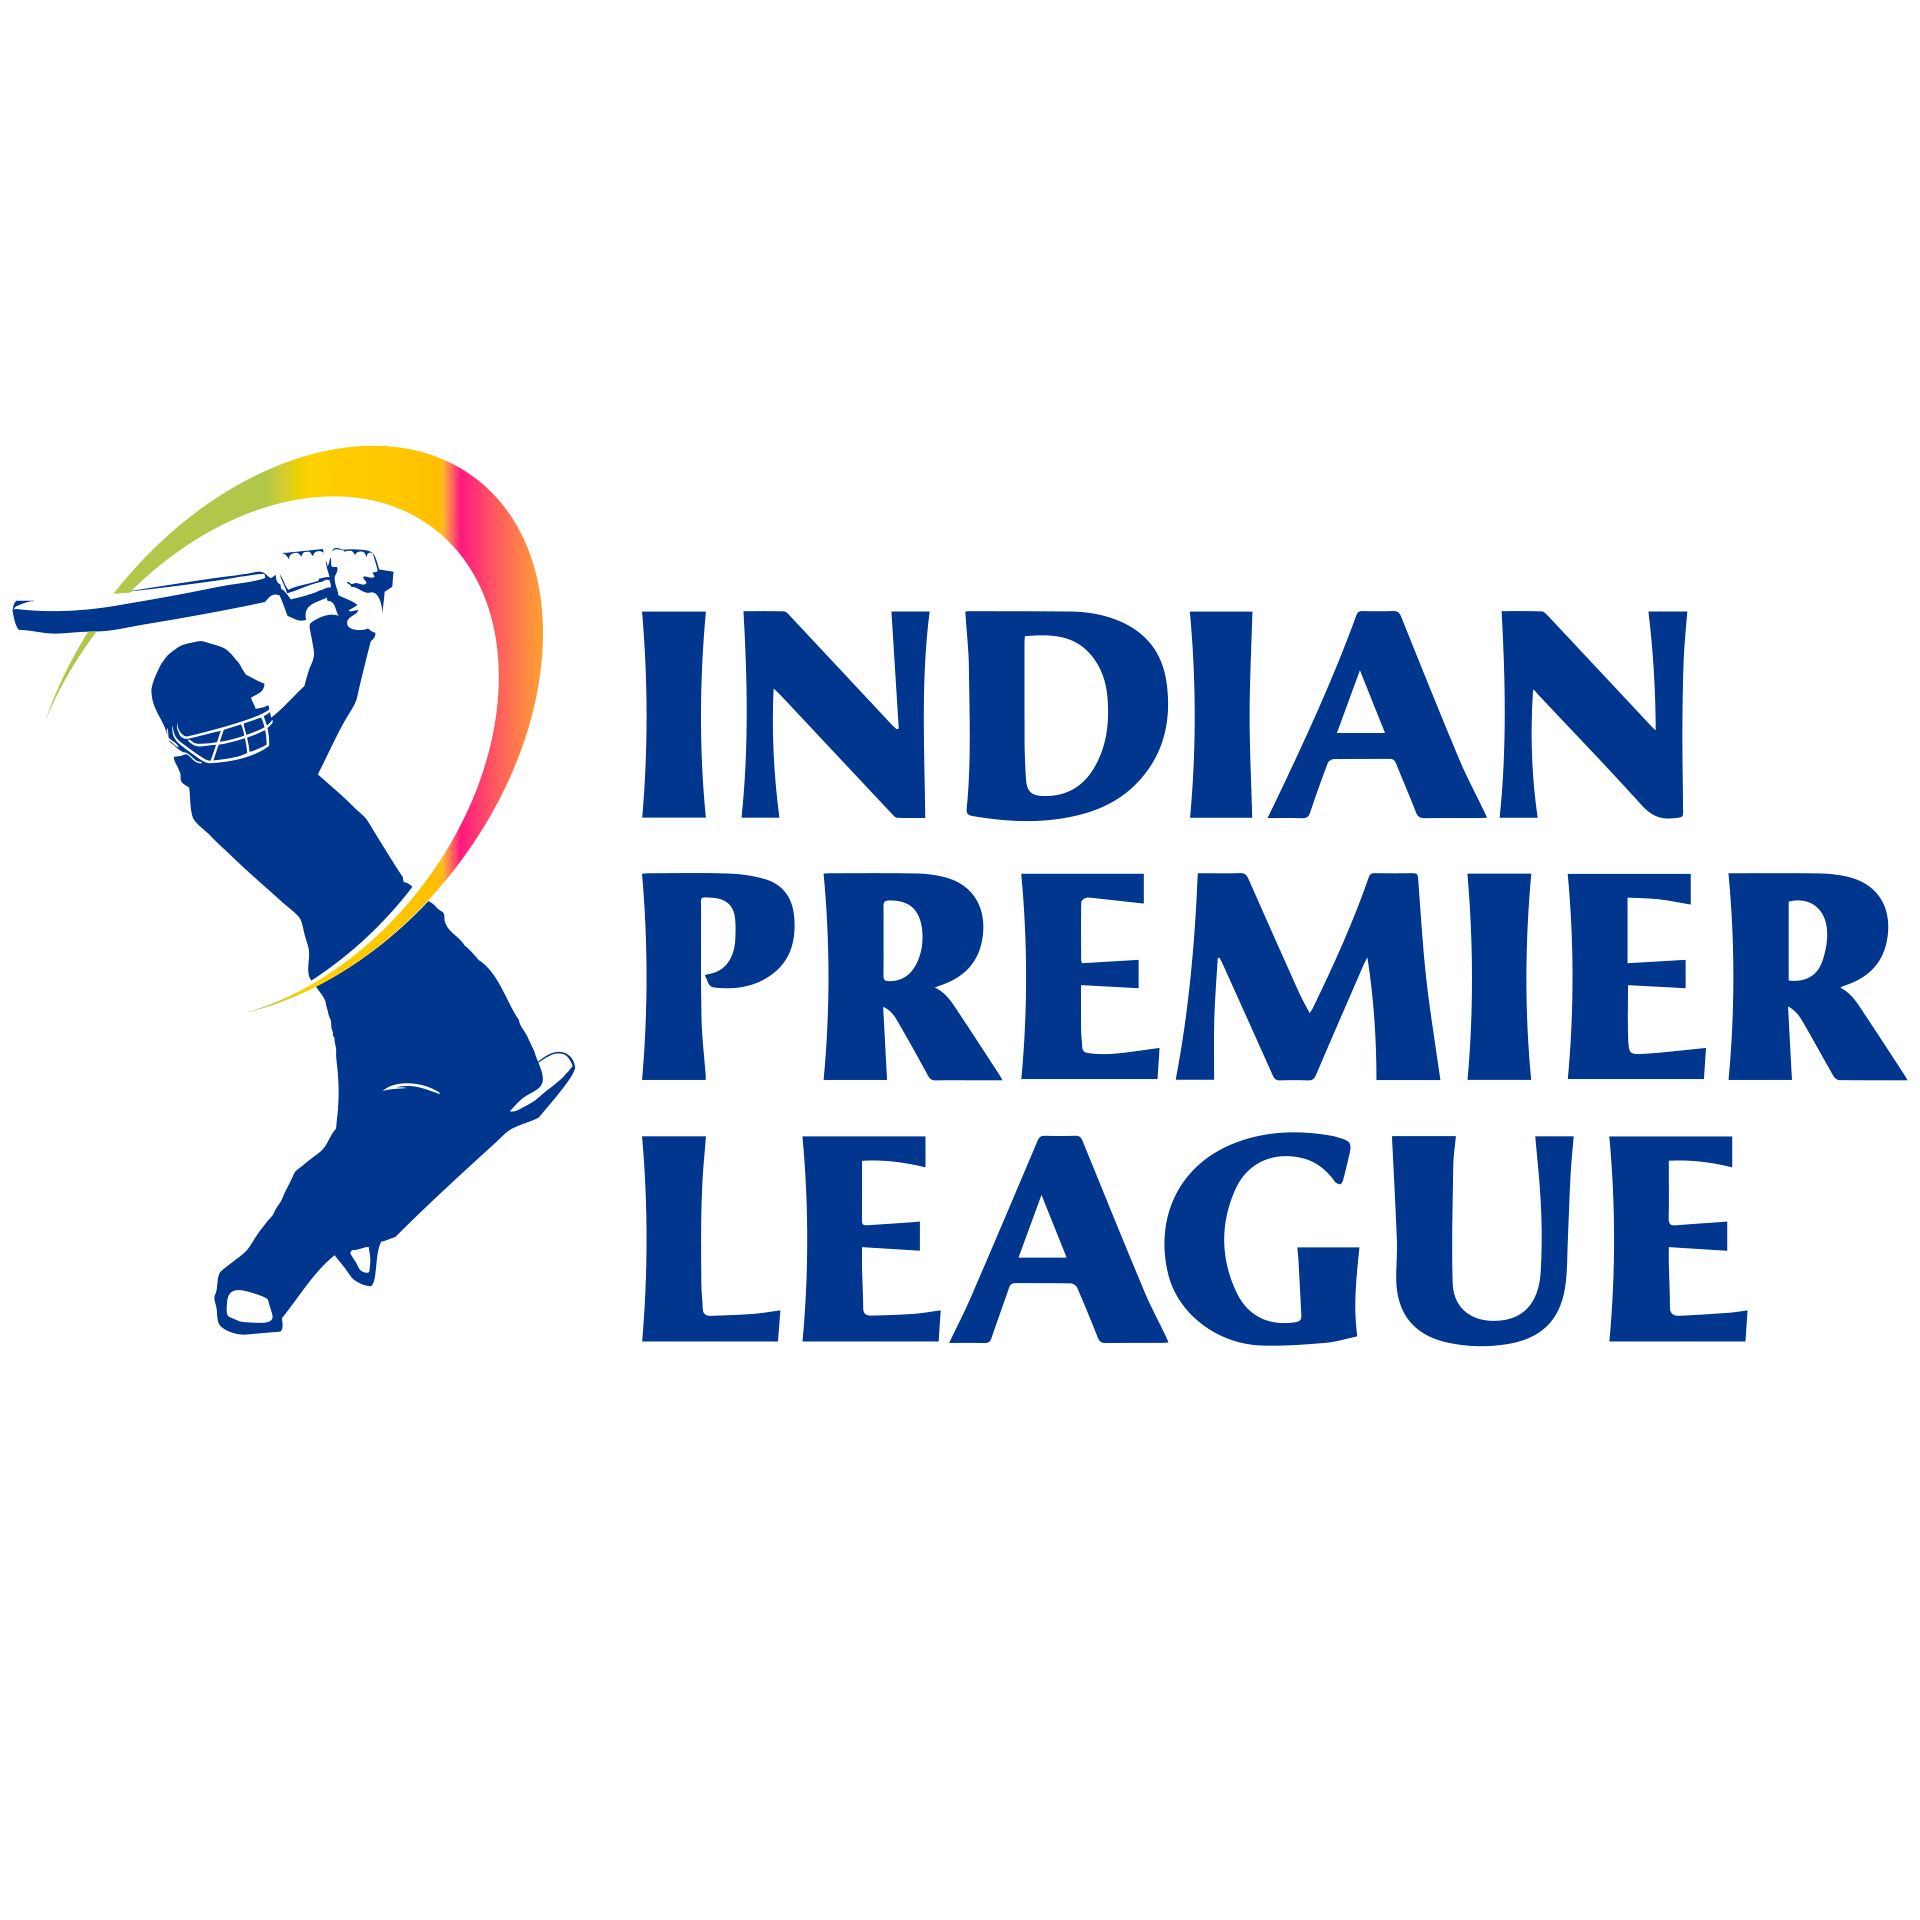 Bet on the Indian Premier League only at the best bookmakers.